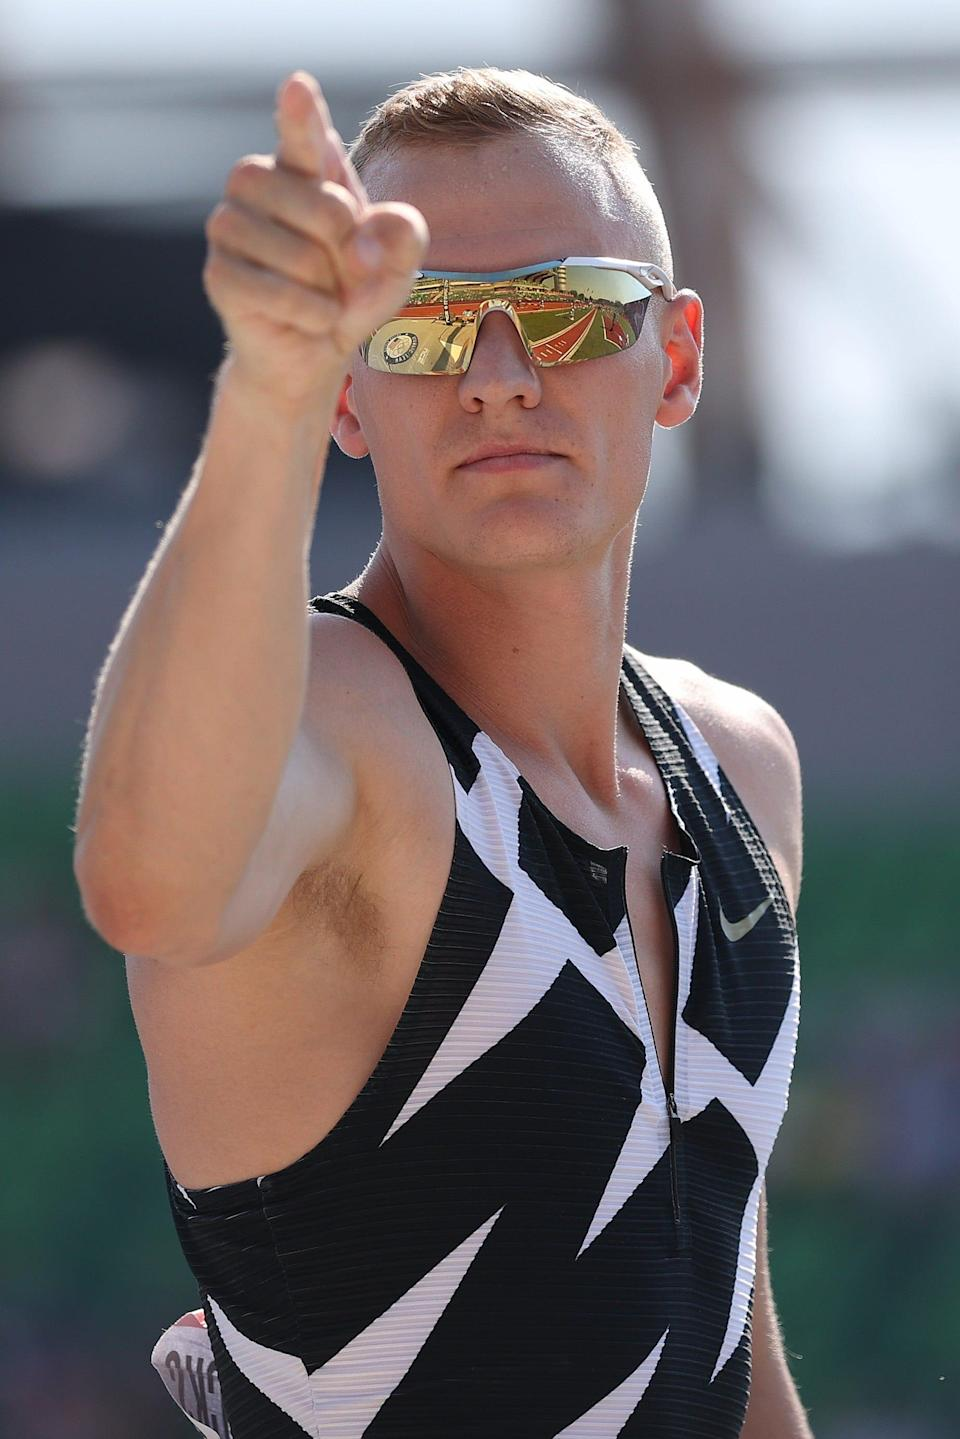 Sam Kendricks, who won bronze in the pole vault at the 2016 Olympics in Rio, is out of the Tokyo Games after testing positive for COVID-19.